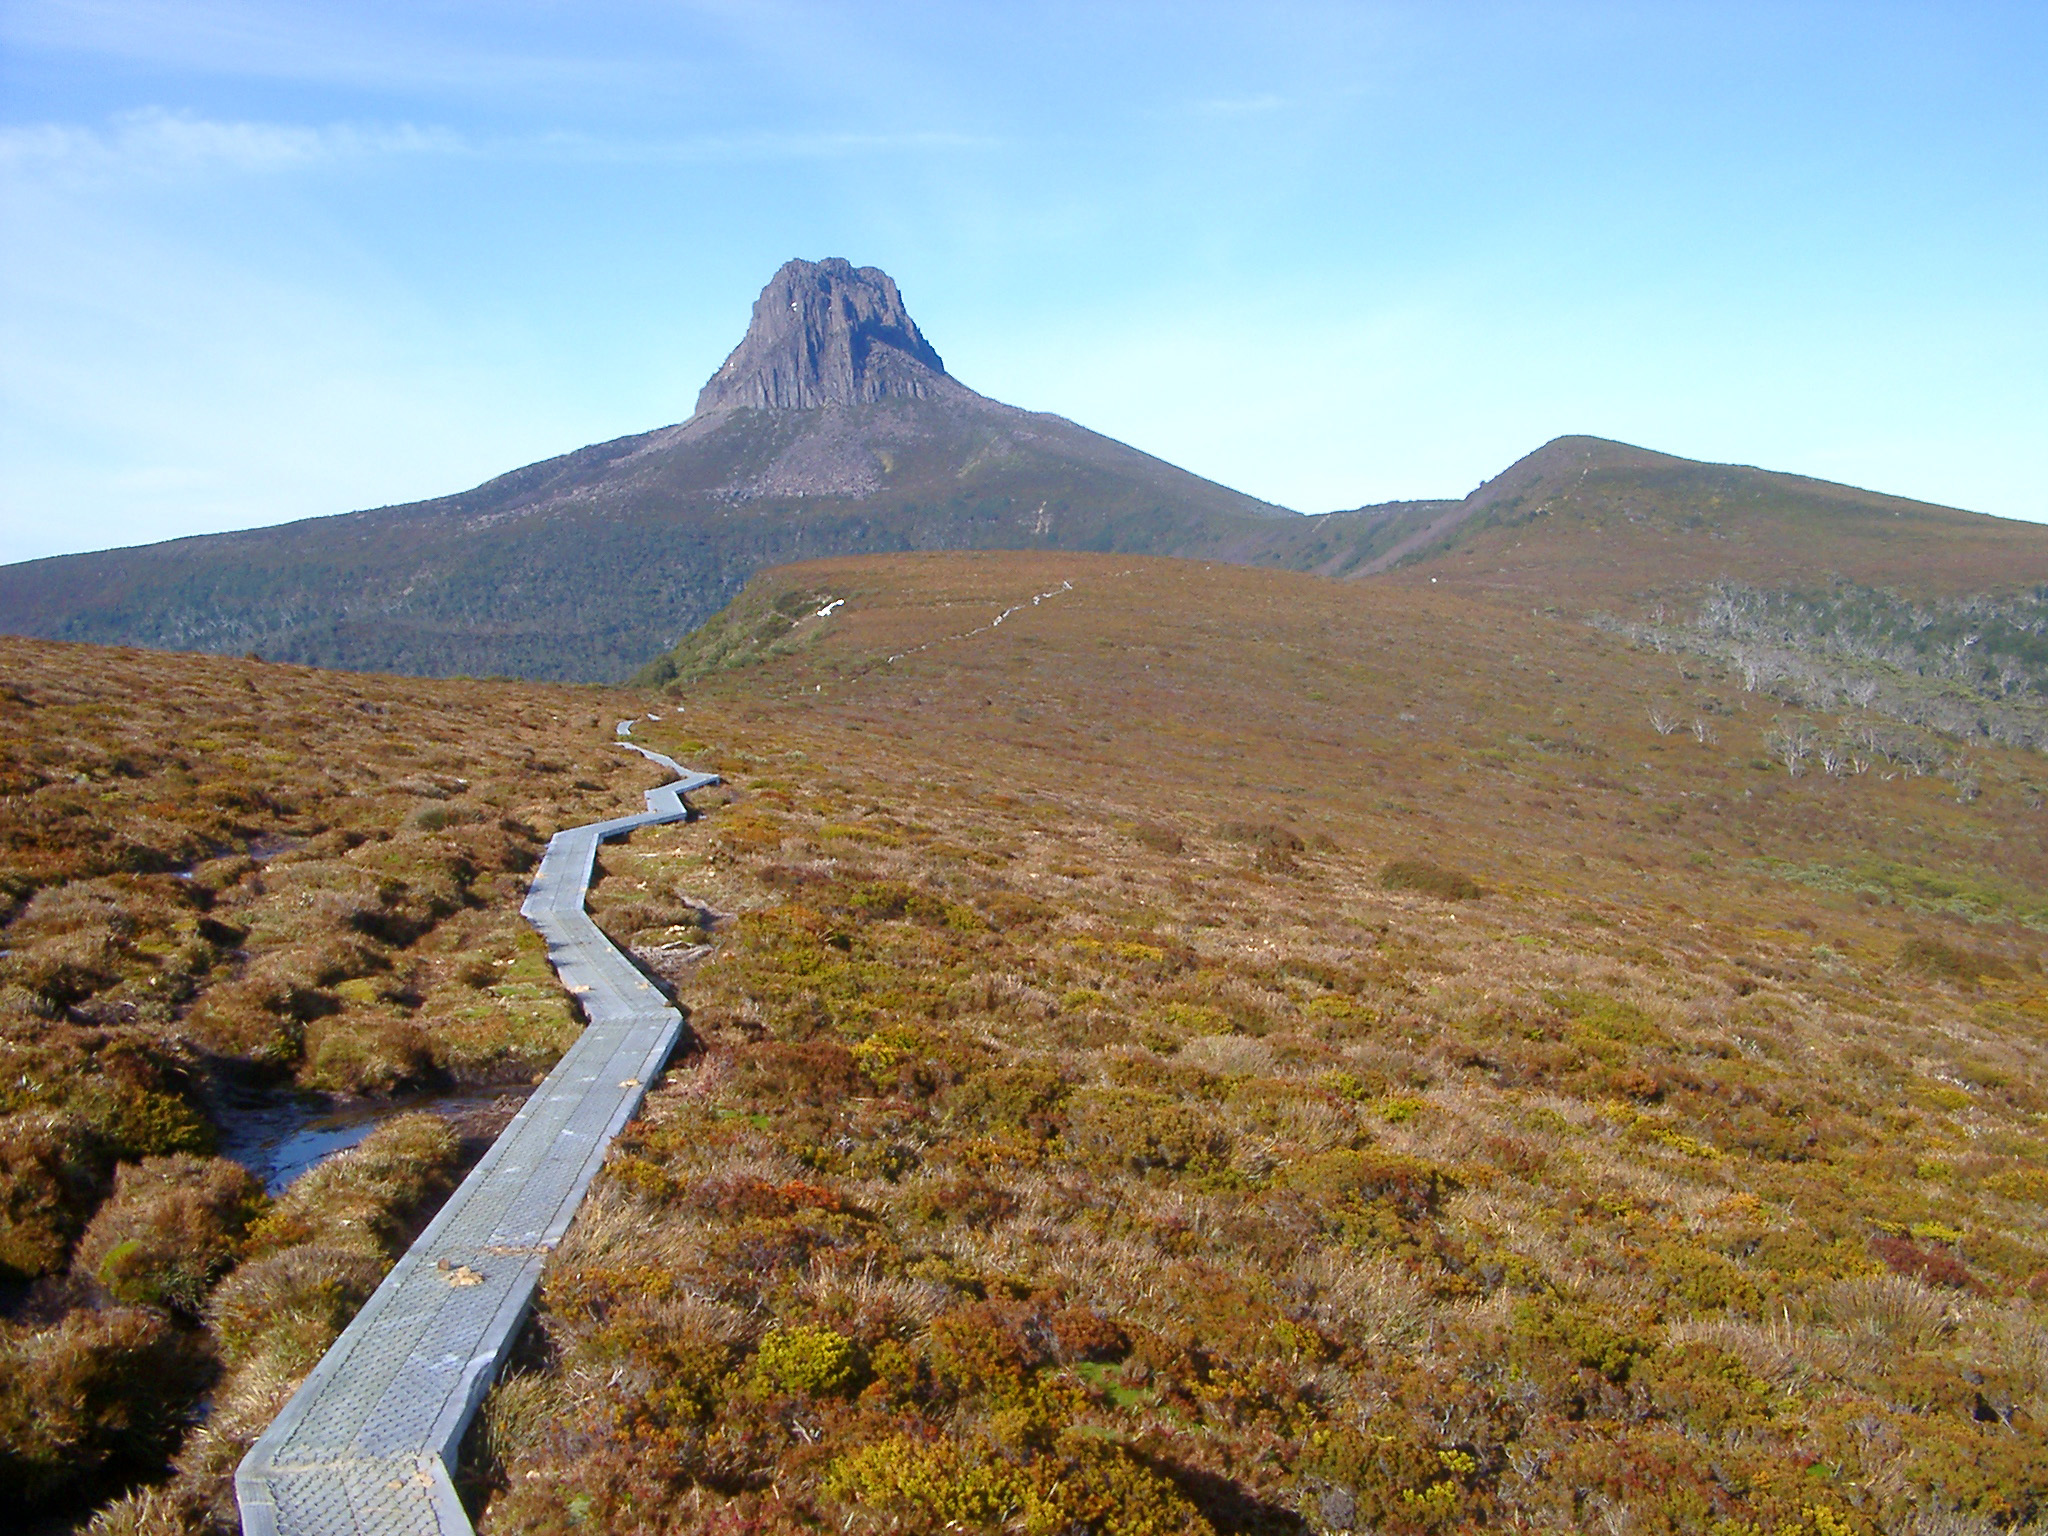 Wide Landscape and a Track to Famous Barn Bluff, A Mountain located in the Cradle Mountain-Lake St Clair National Park in the Central Highlands of Tasmania. Captured on Light Blue Sky Background.